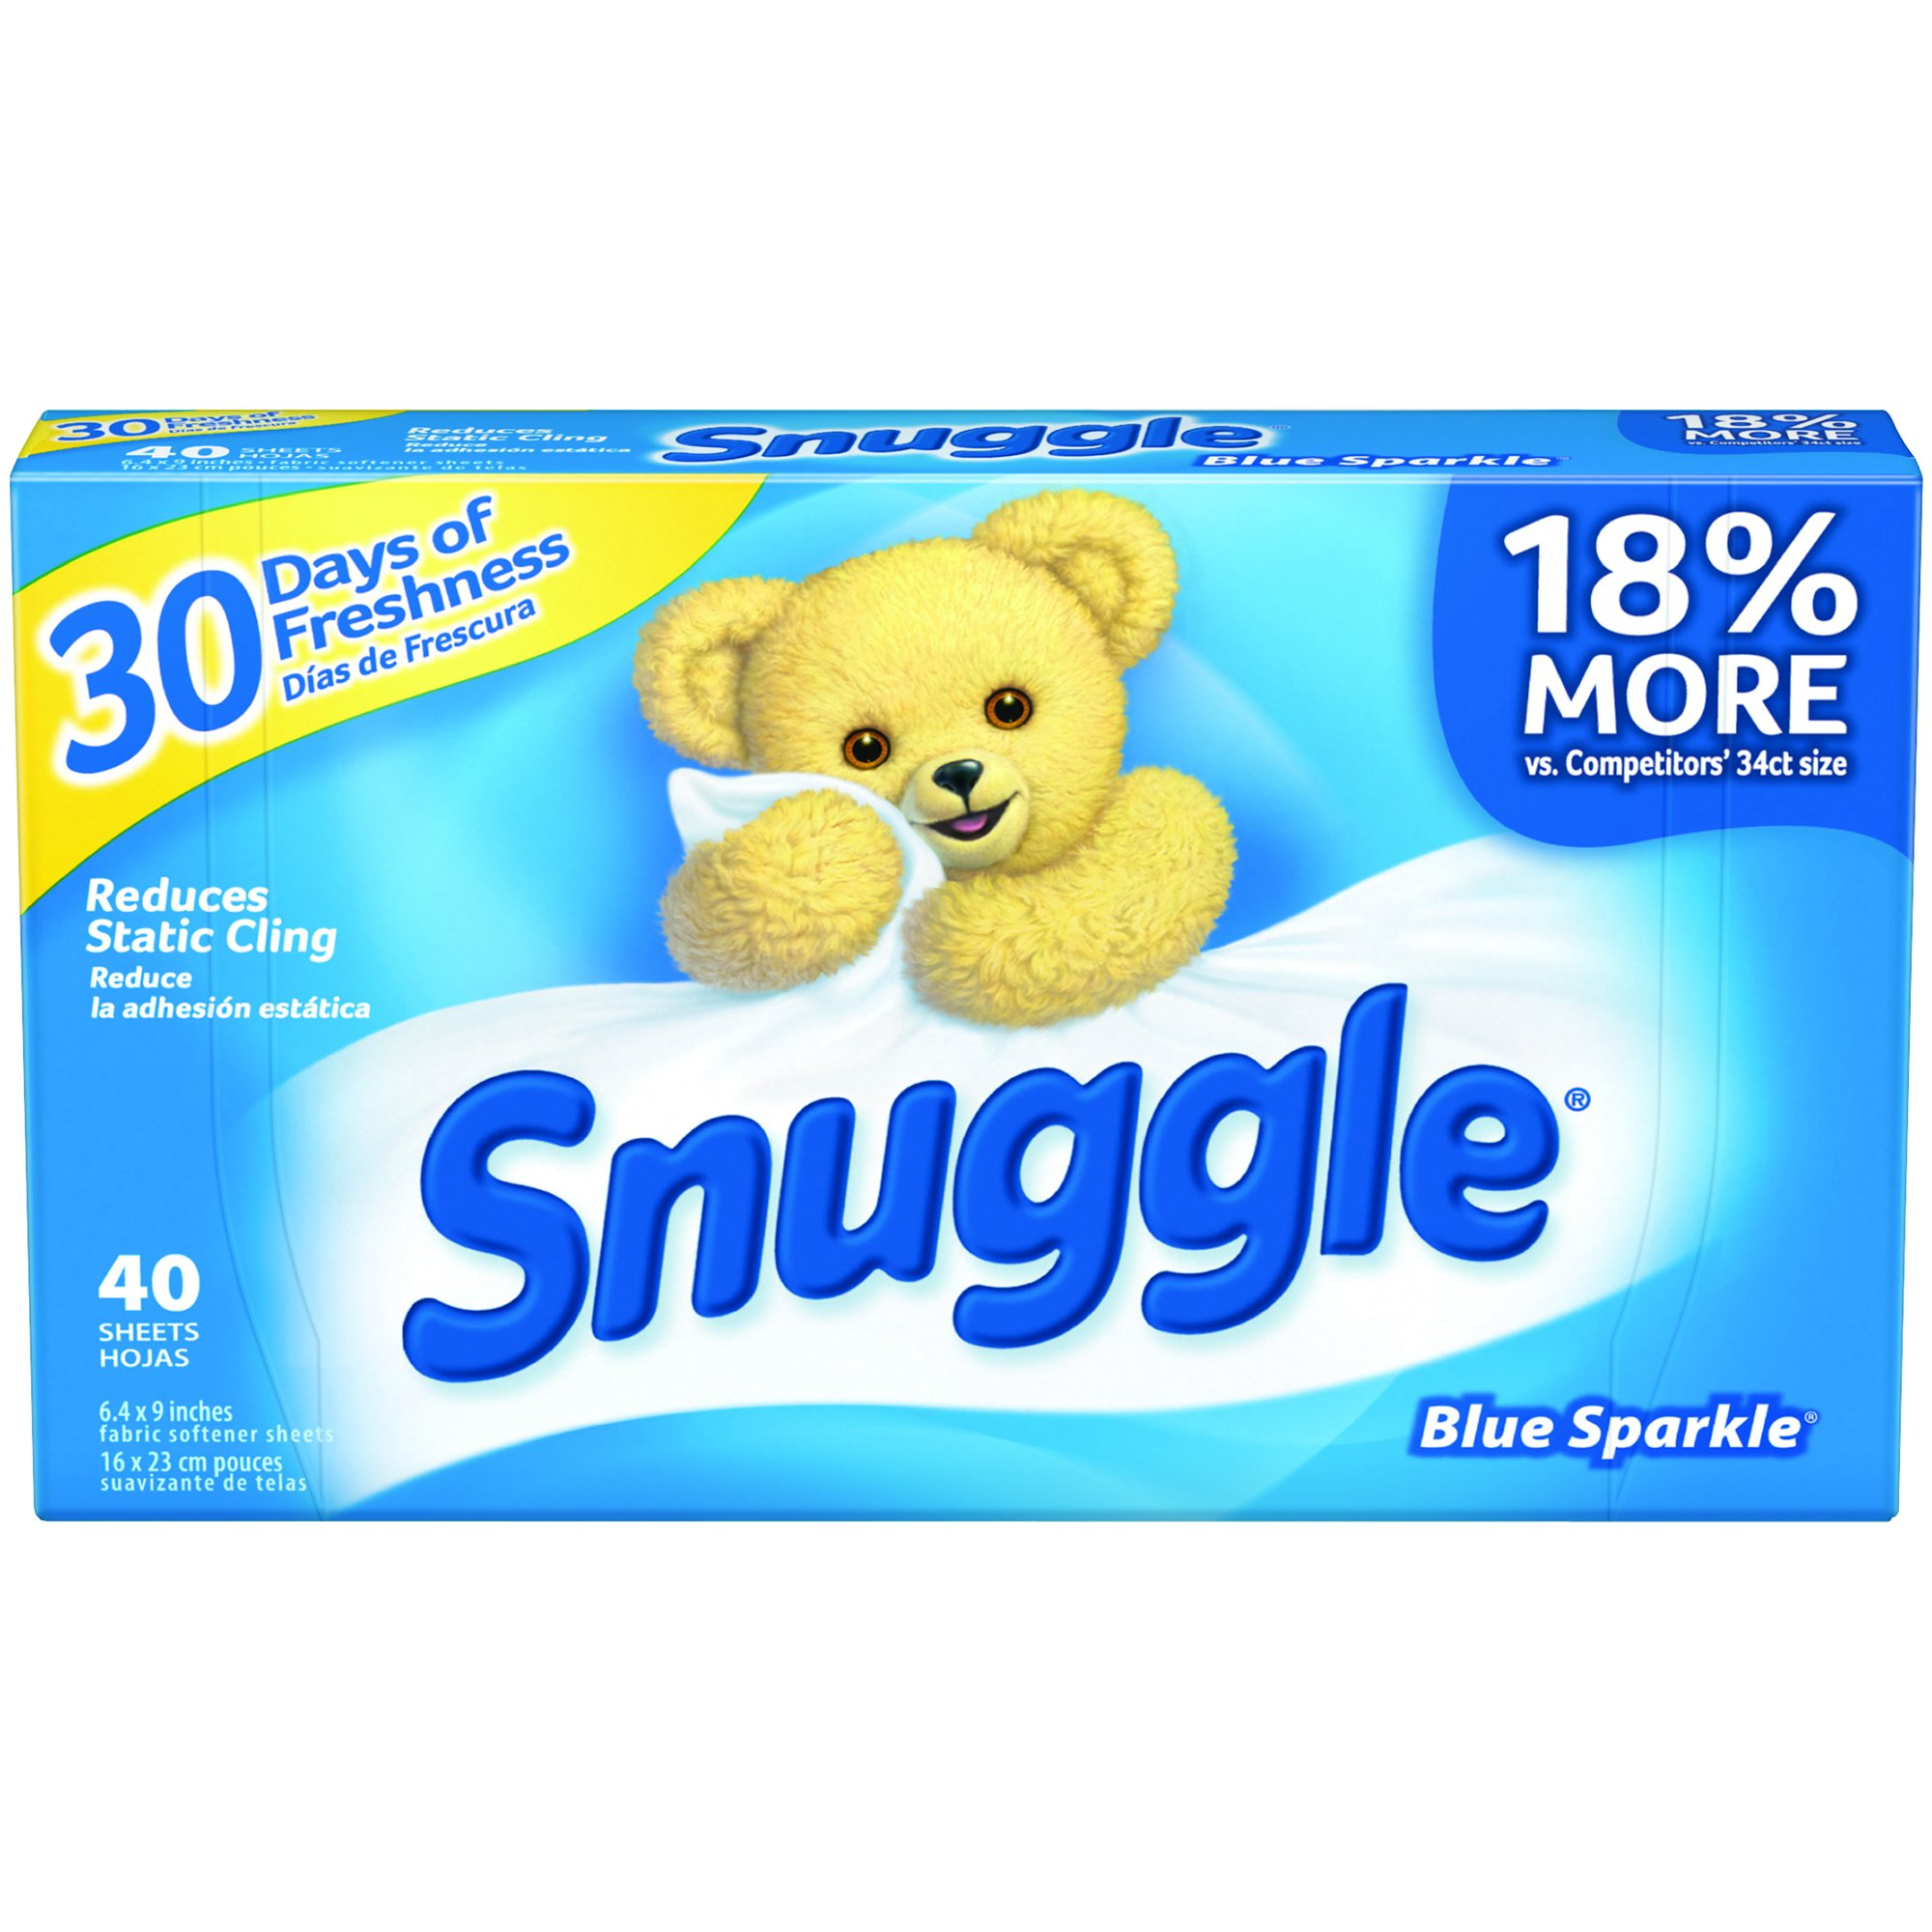 Snuggle Fabric Softener Sheets (Blue Sparkle, 40-Count, Case of 12) by Diversey